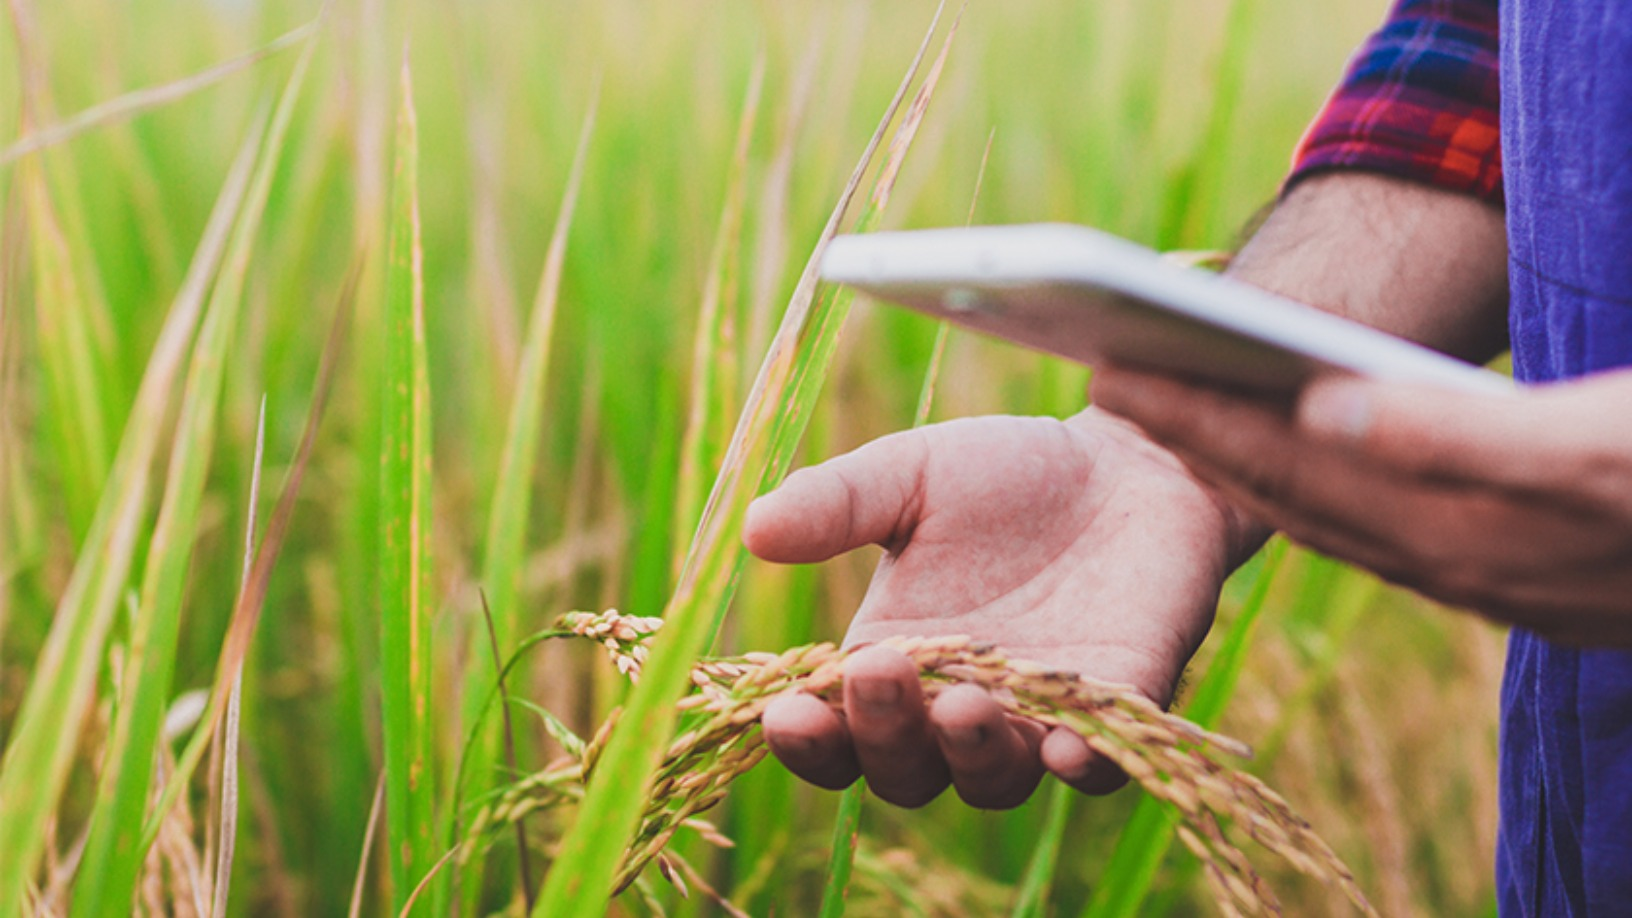 Yimutian: China agriculture e-commerce's comeback kid